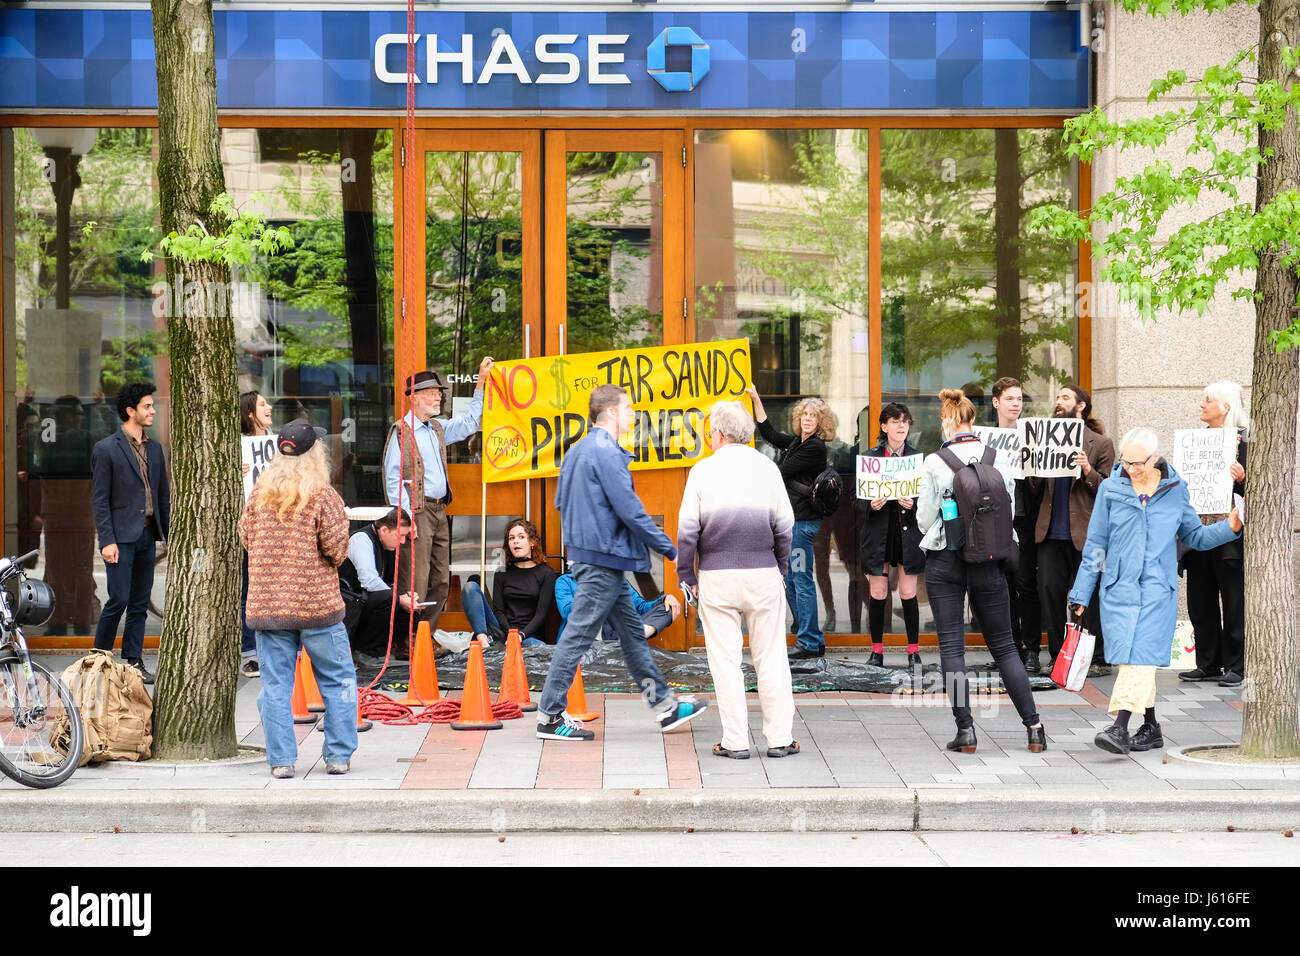 People protesting tar sands pipeline in front of Chase Bank, Seattle, Washington, US - Stock Image